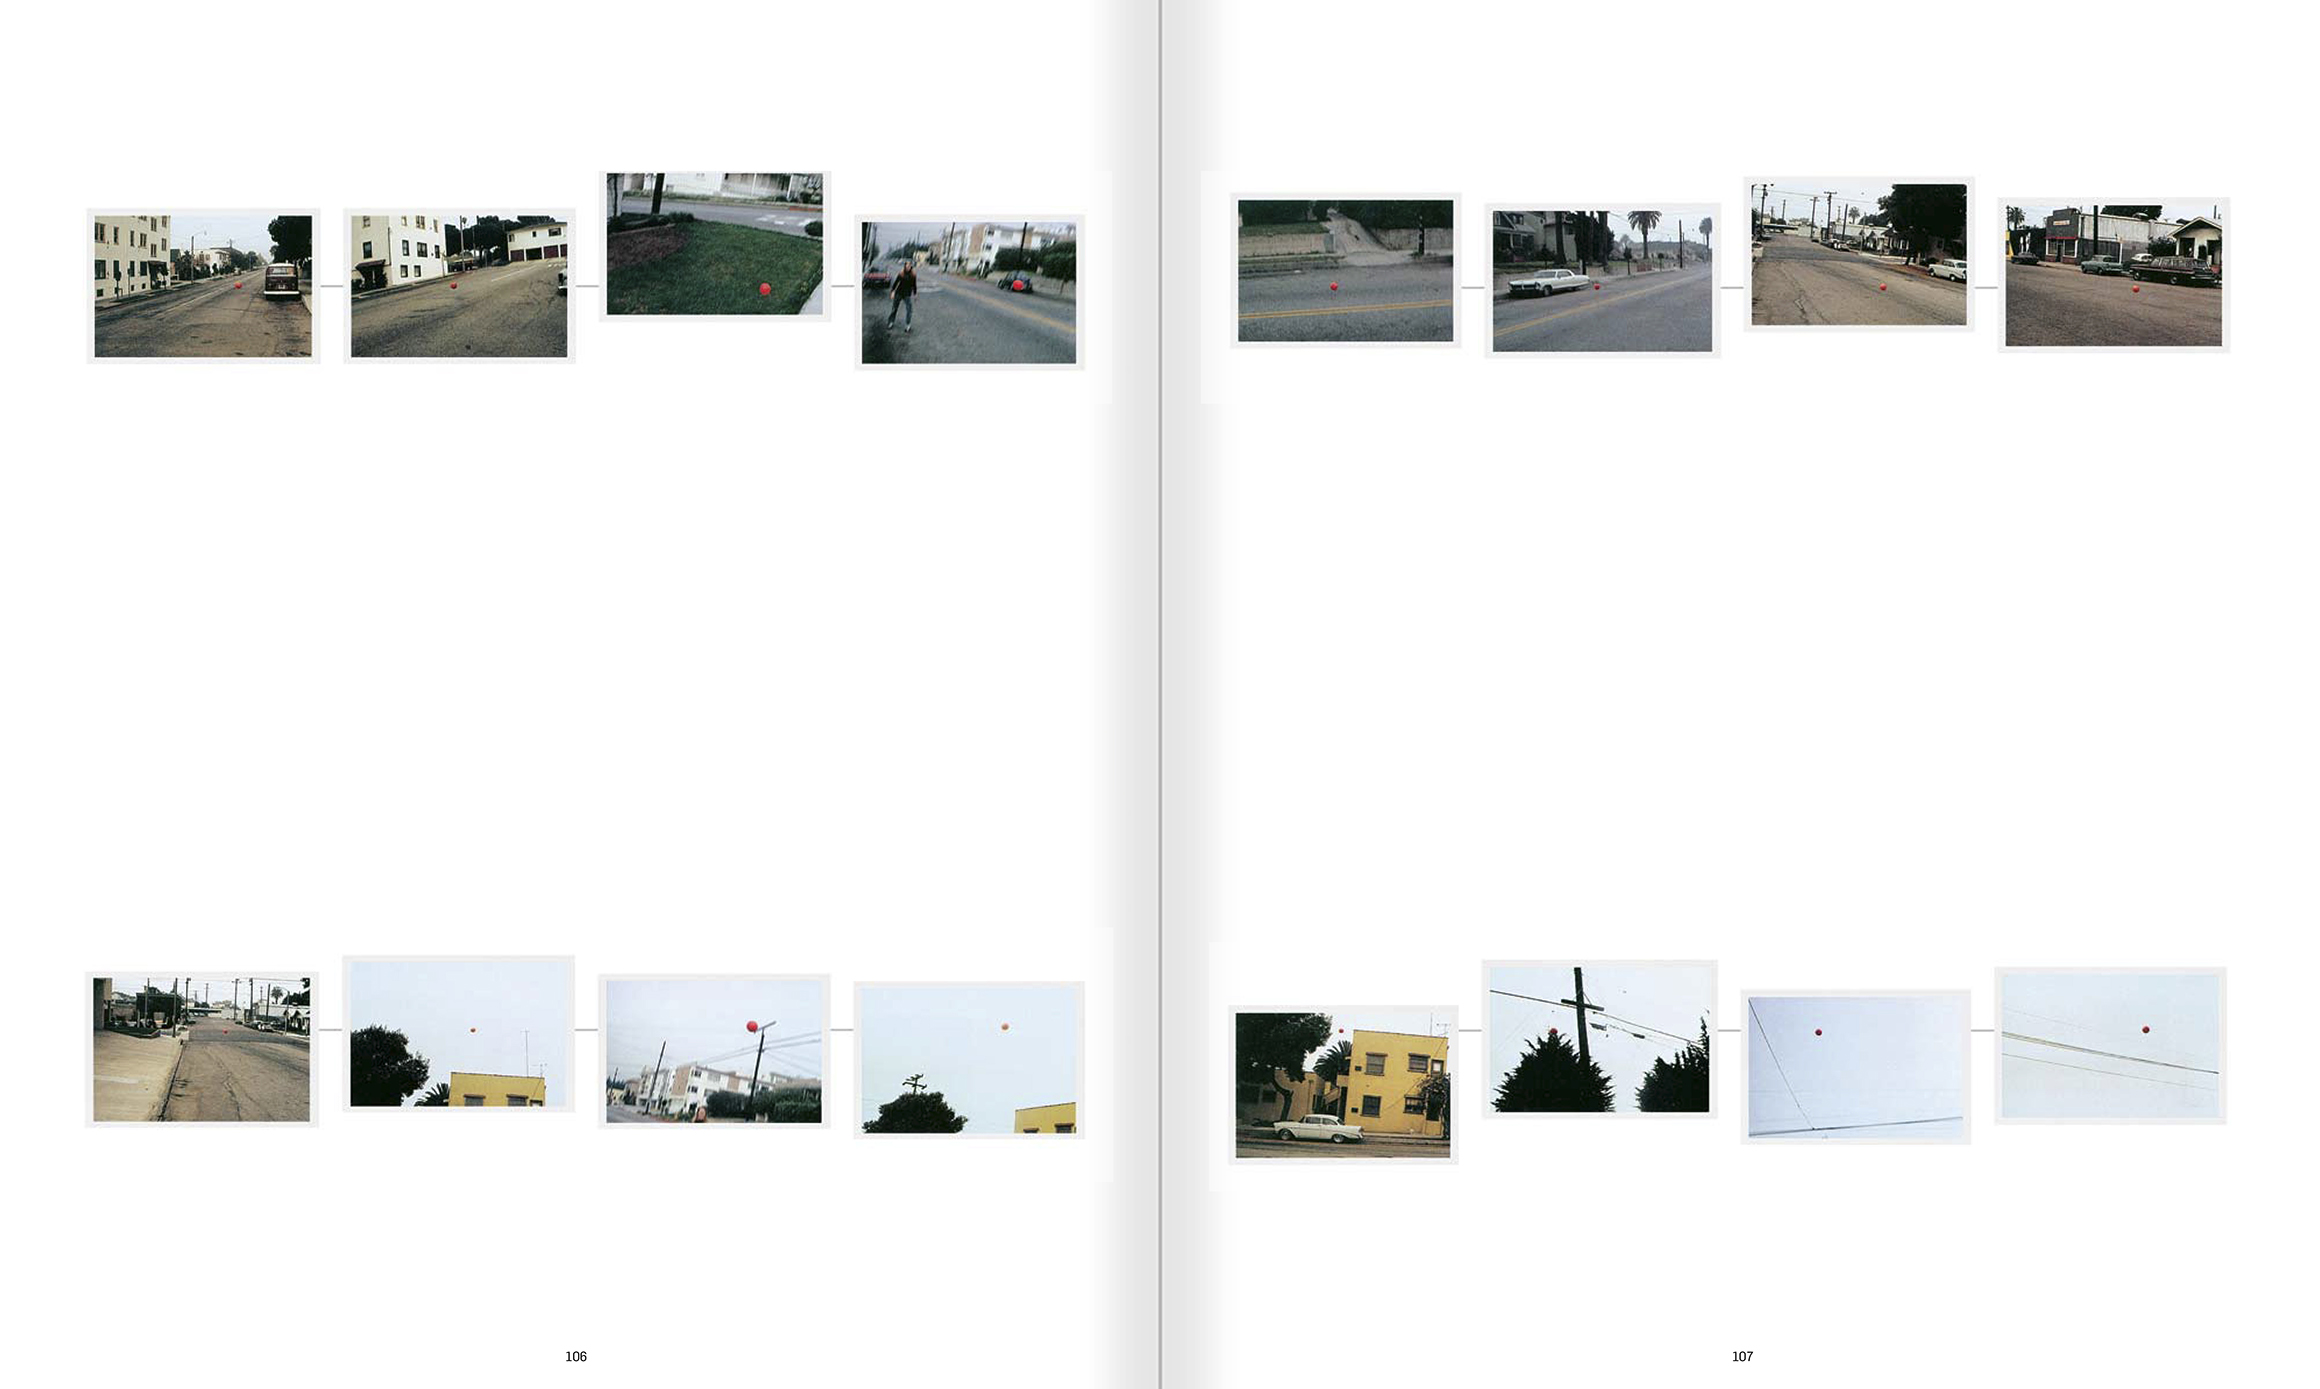 Selection from the catalogue 'John Baldessari. Pure Beauty', pages 106 and 107